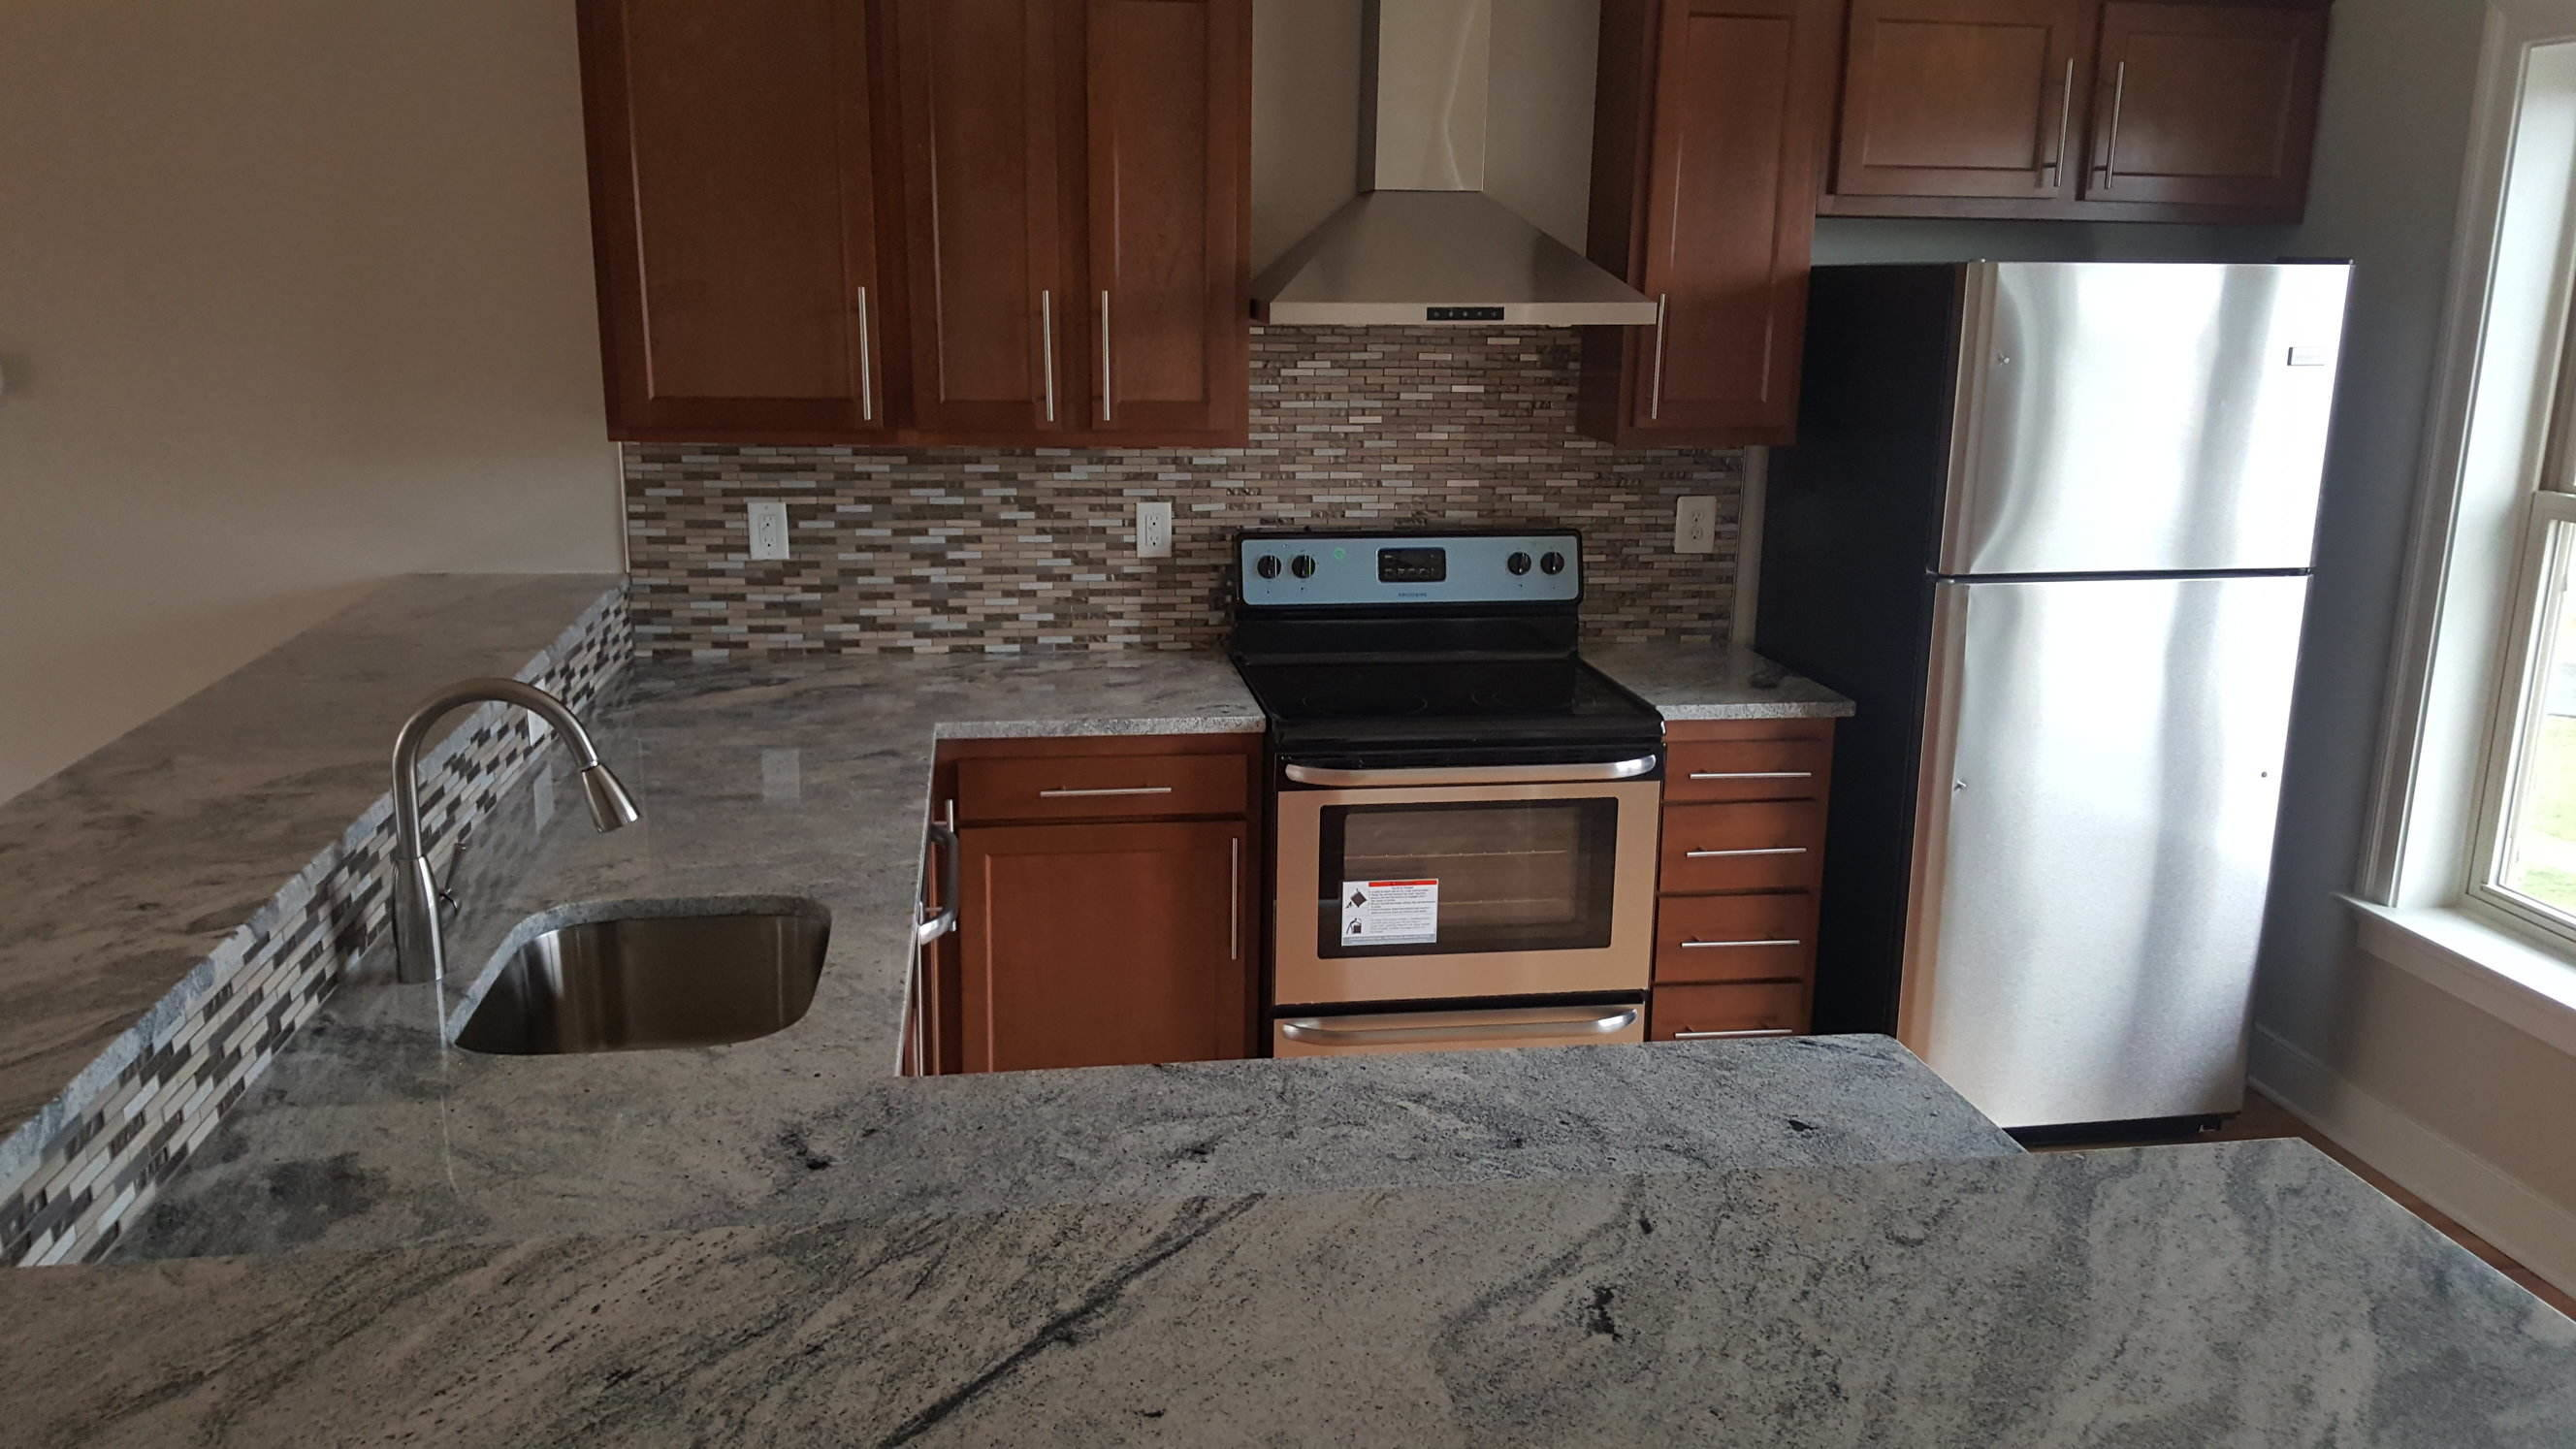 myidealstone kitchen remodeling manassas va kitchen remodeling with new granite countertop or sink manassas va